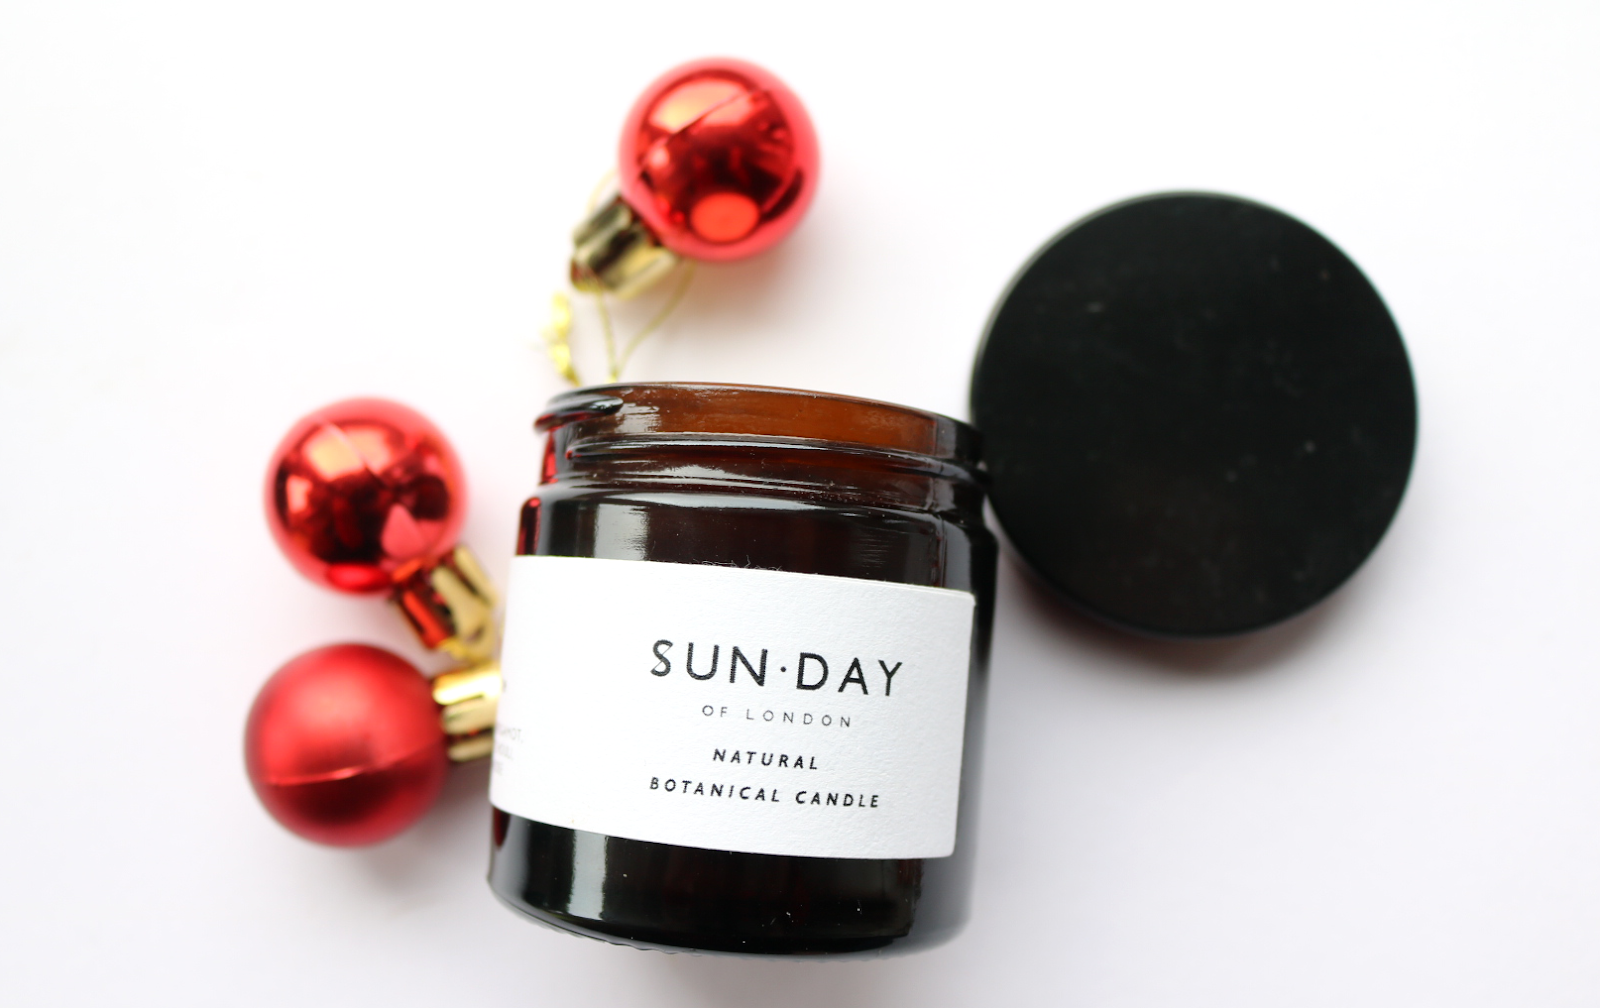 SUN.DAY Of London Natural Botanical Mini Candle in VI céleste